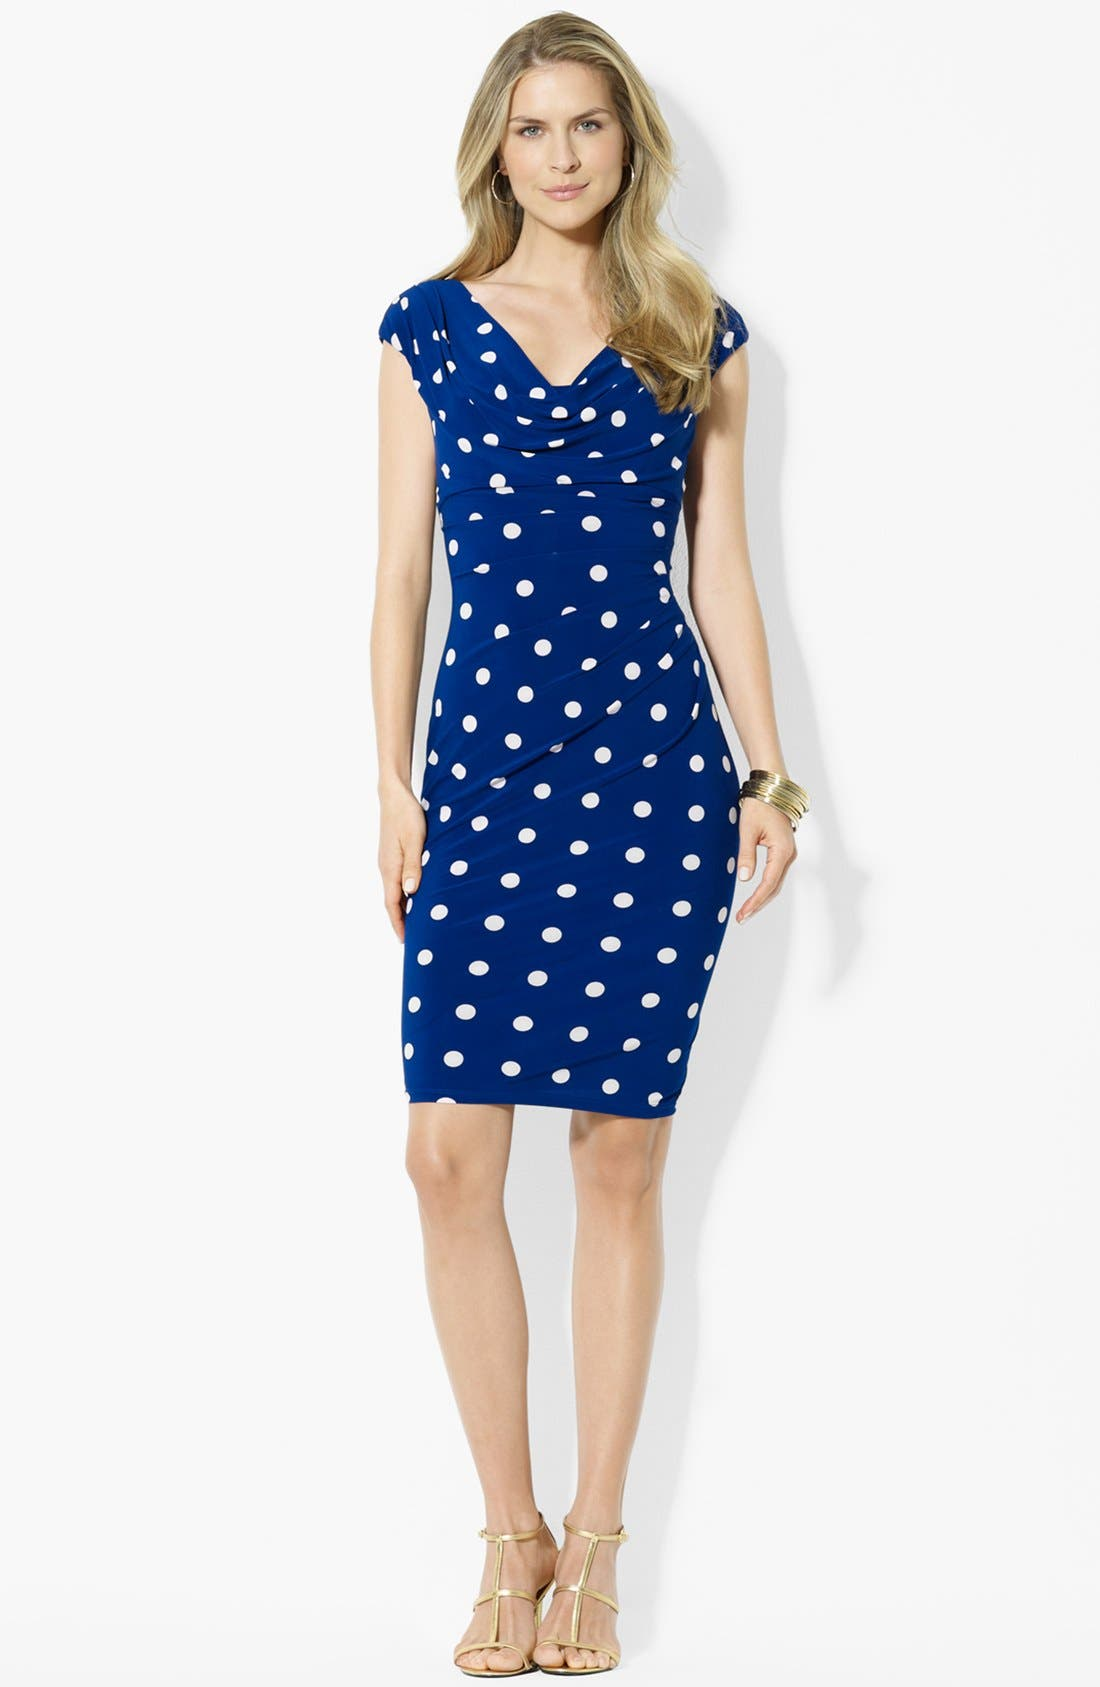 Alternate Image 1 Selected - Lauren Ralph Lauren Polka Dot Jersey Dress